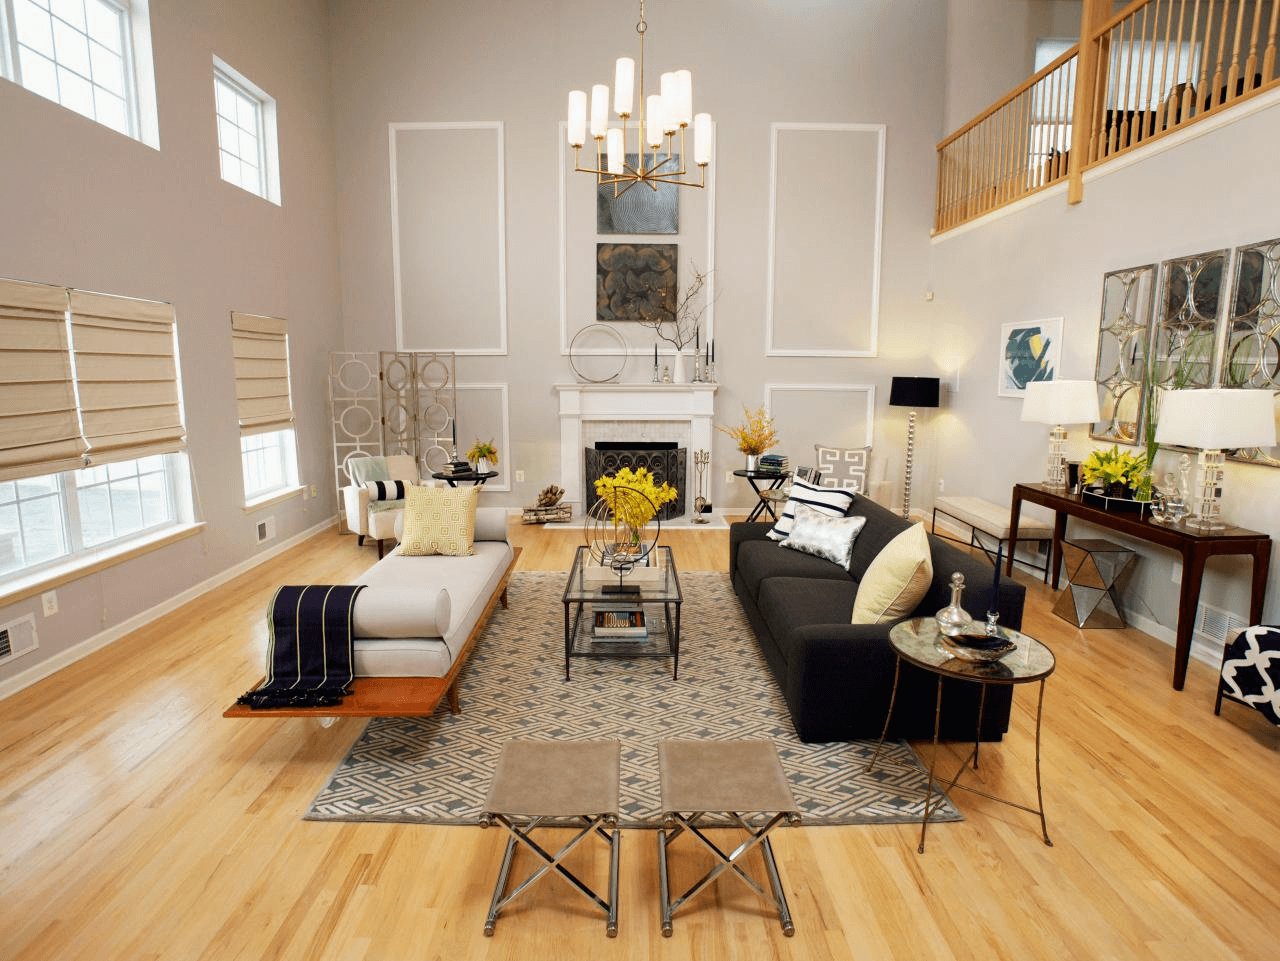 Modern living room lighting high ceiling with hanging chandelier and large window